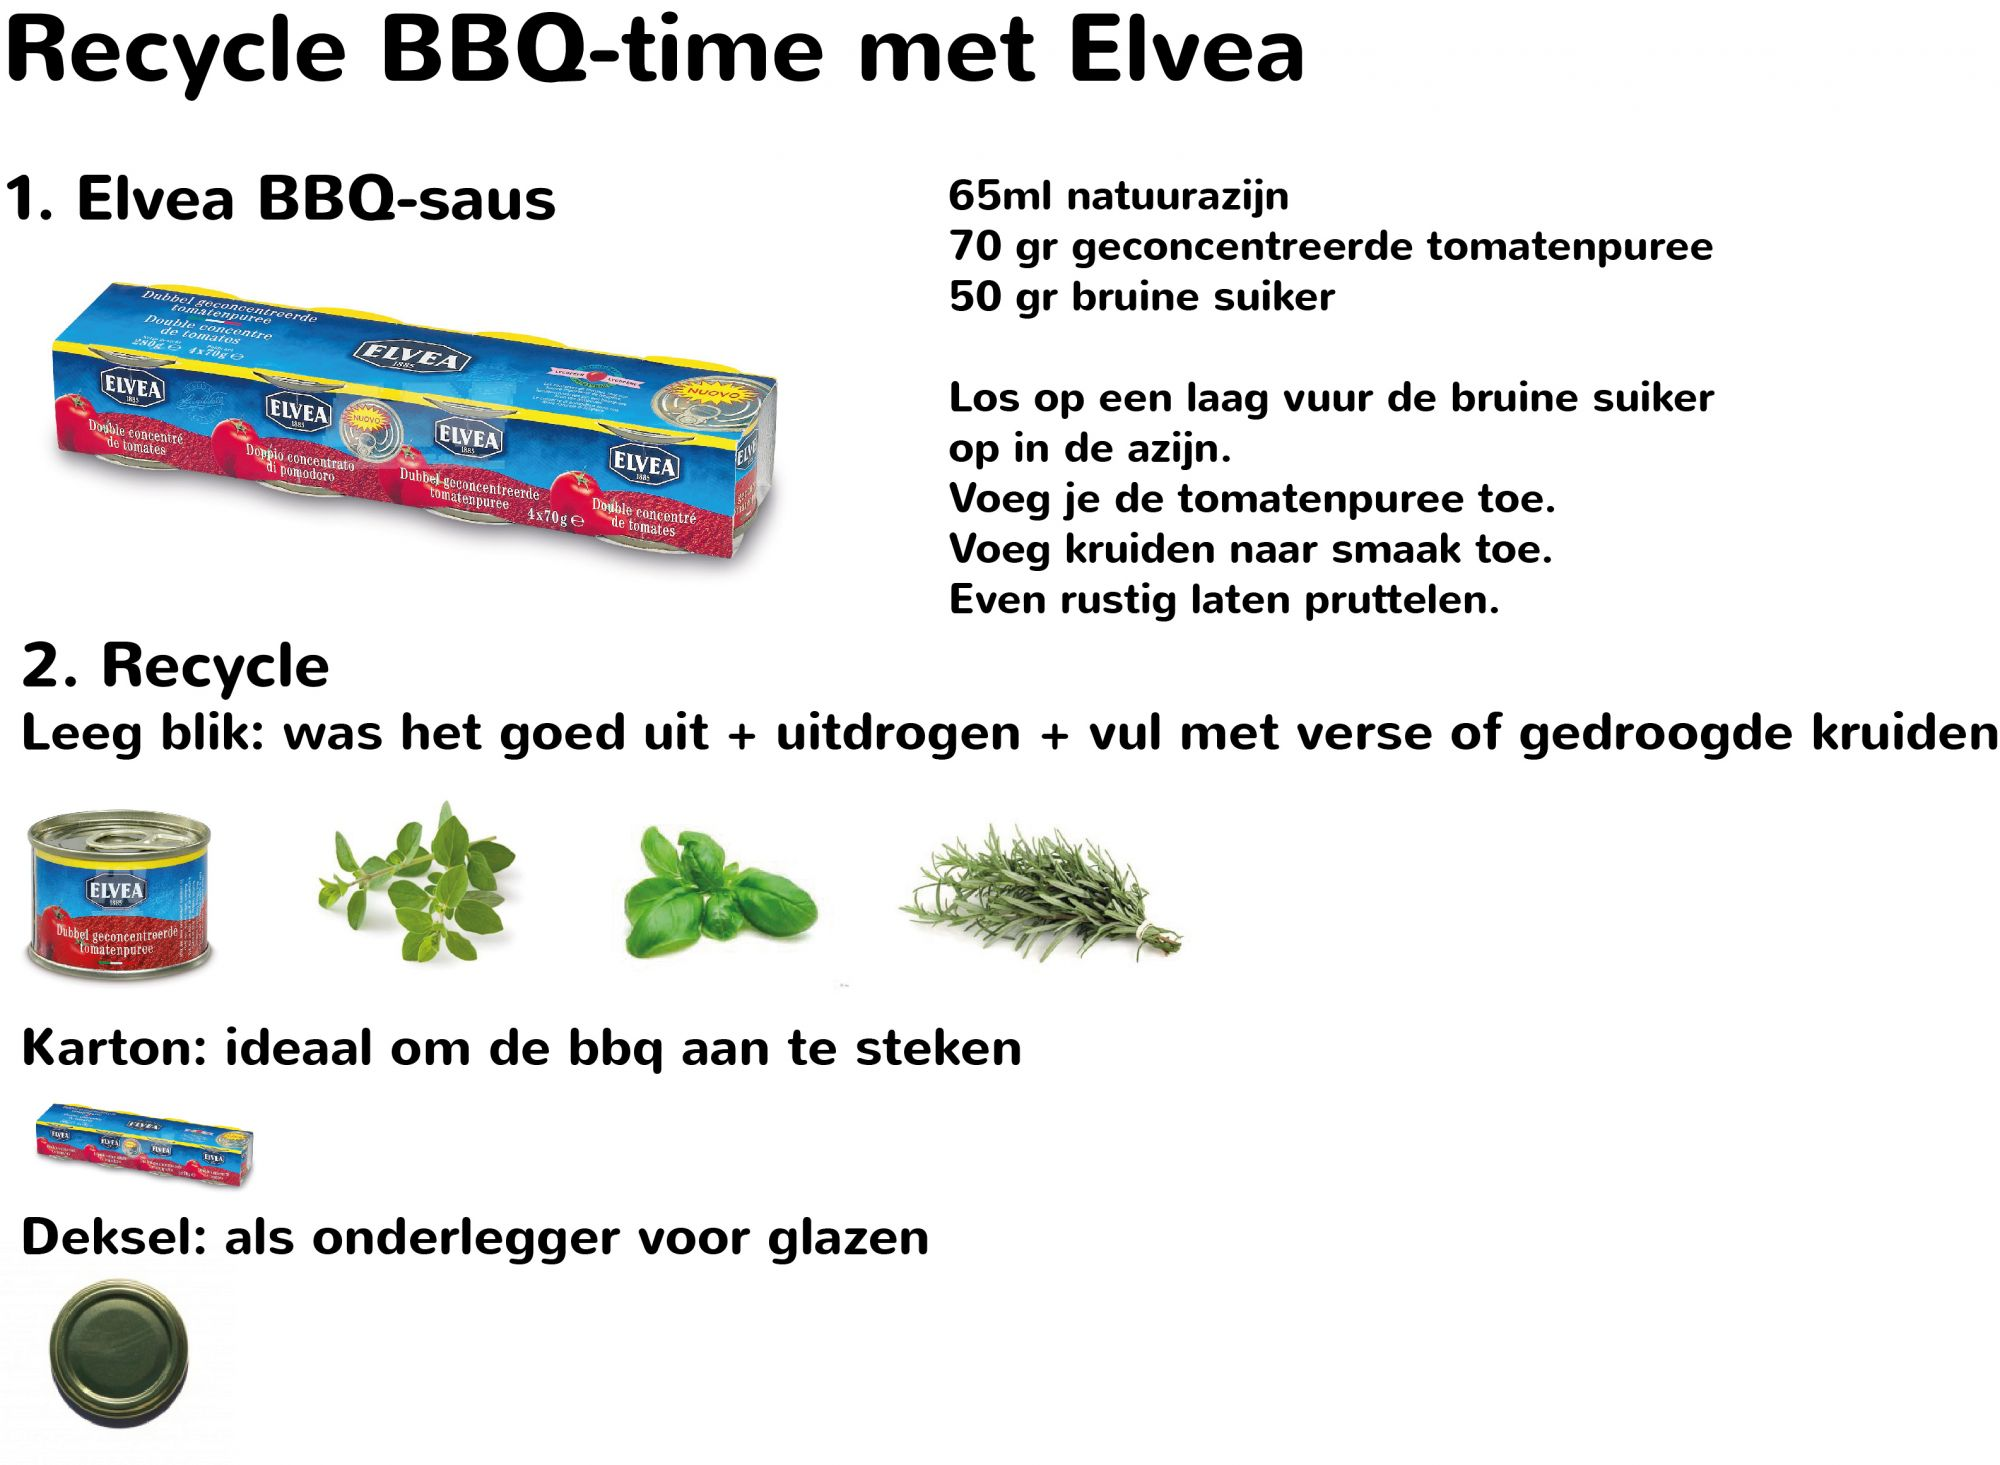 Recycle BBQ-time met Elvea